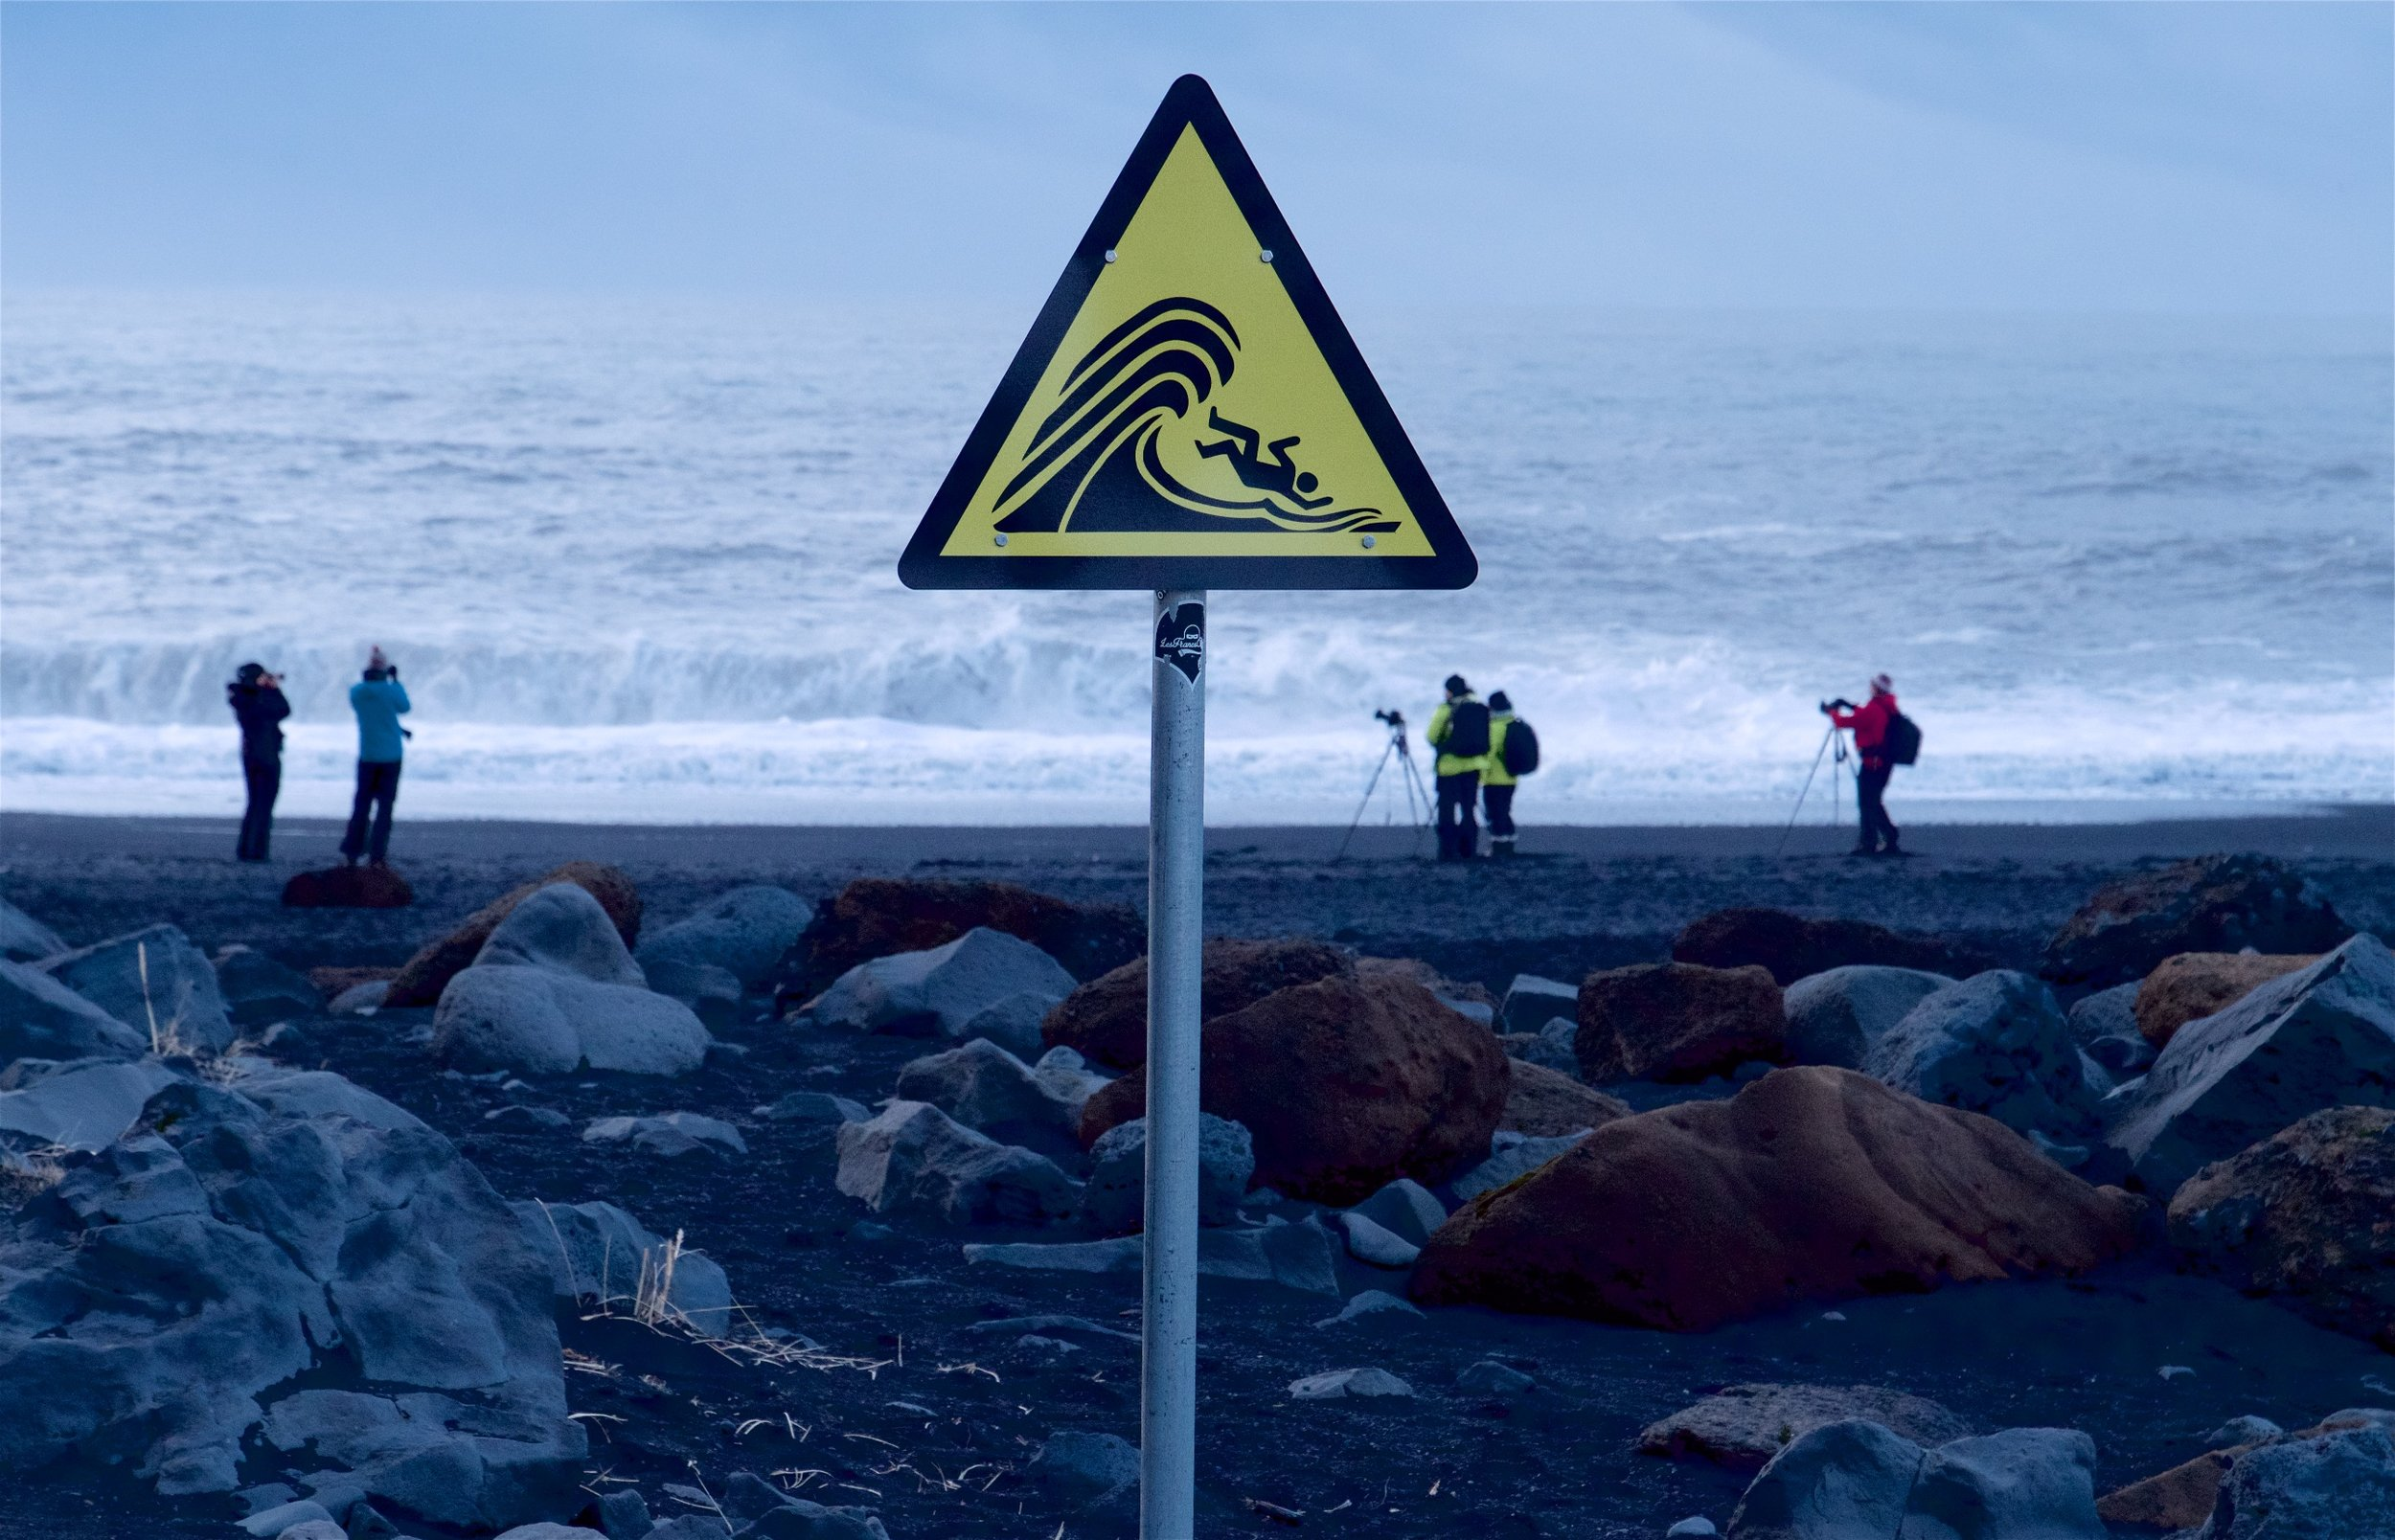 Warning sign, Iceland